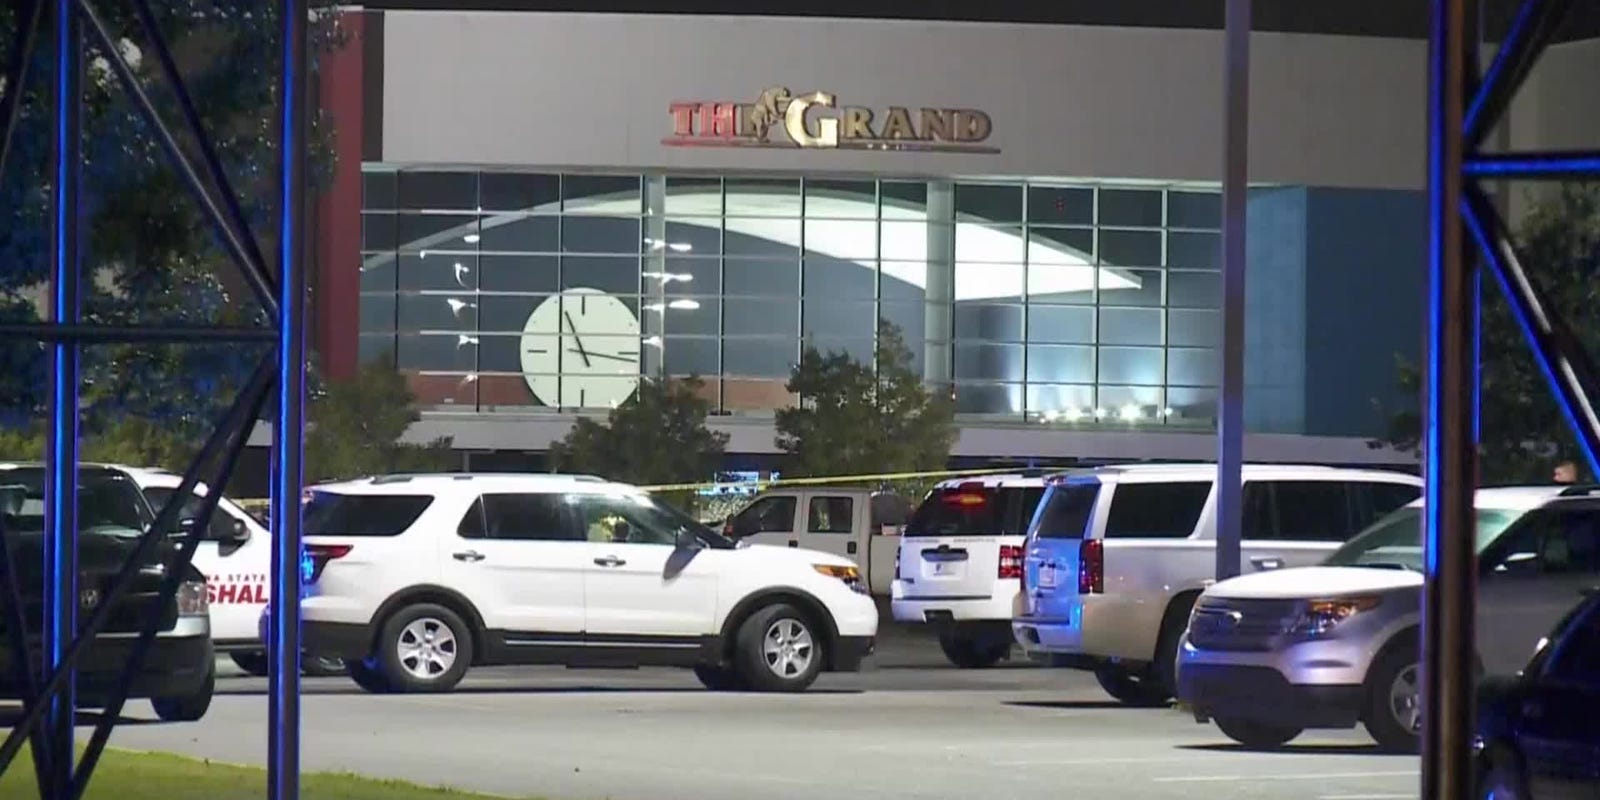 lafayette theater shooting fuels gun control debate. Black Bedroom Furniture Sets. Home Design Ideas